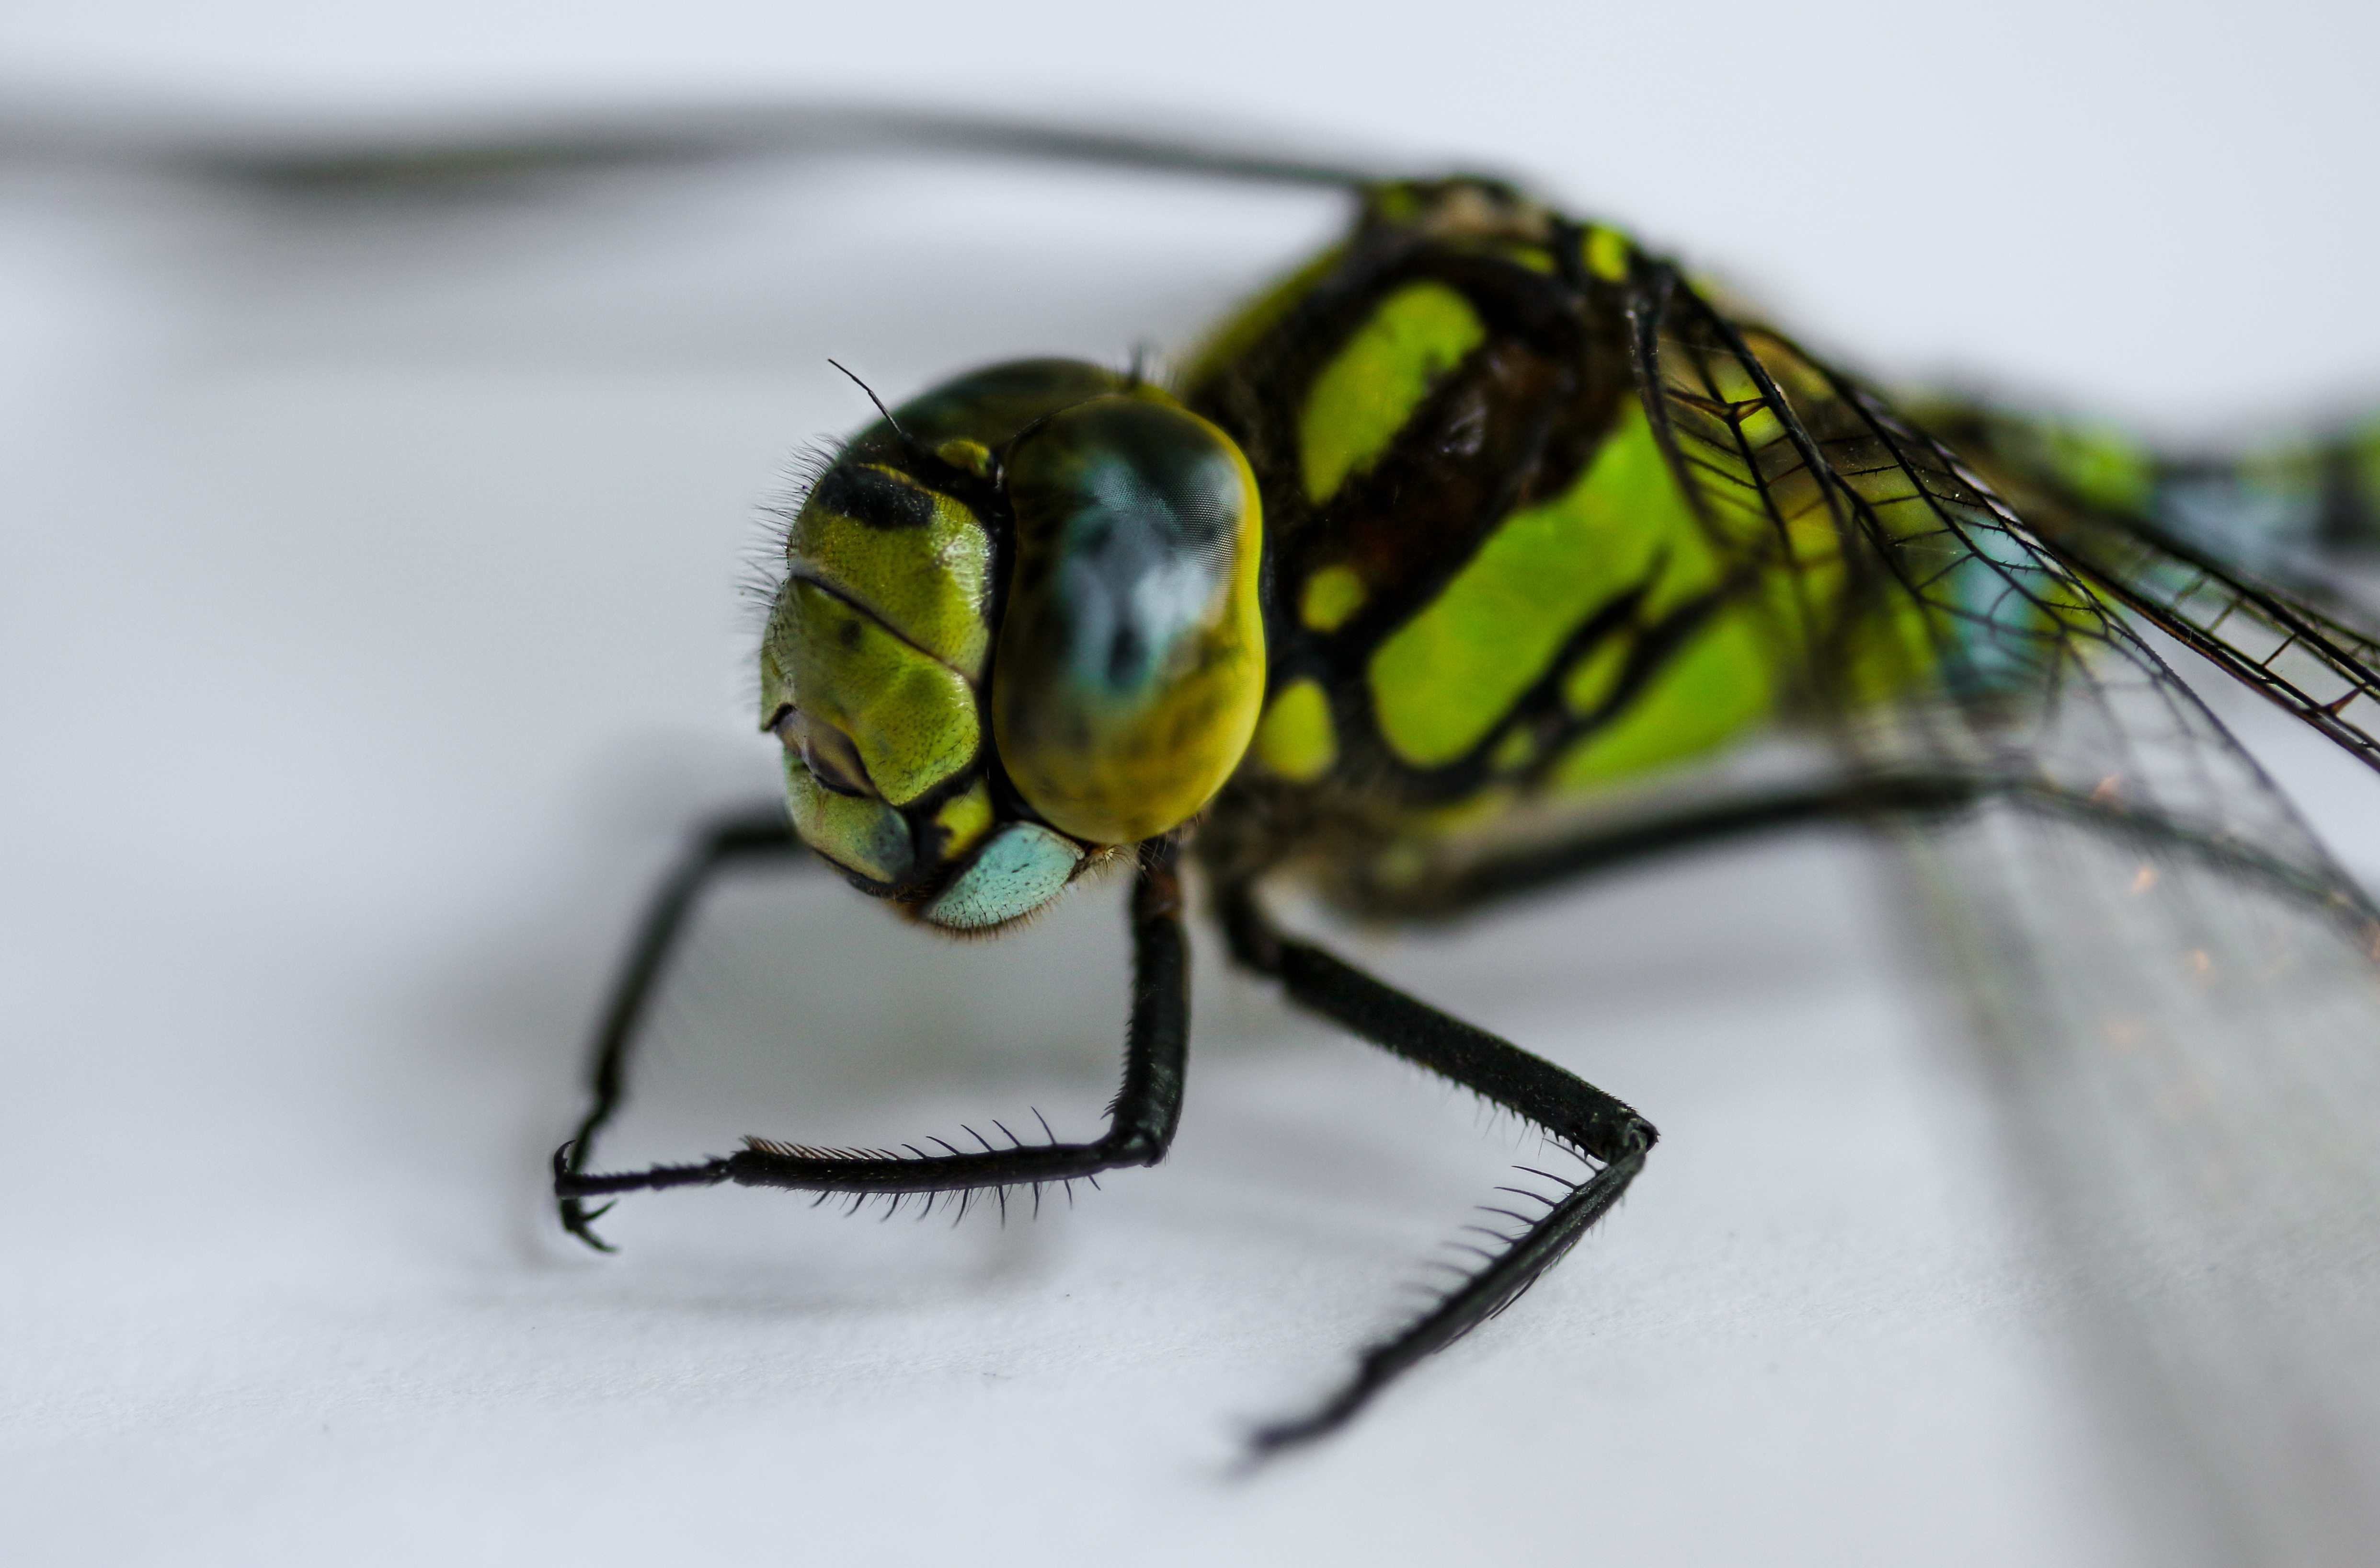 Fly Closeup, Animal, Fly, Insect, Jungle, HQ Photo